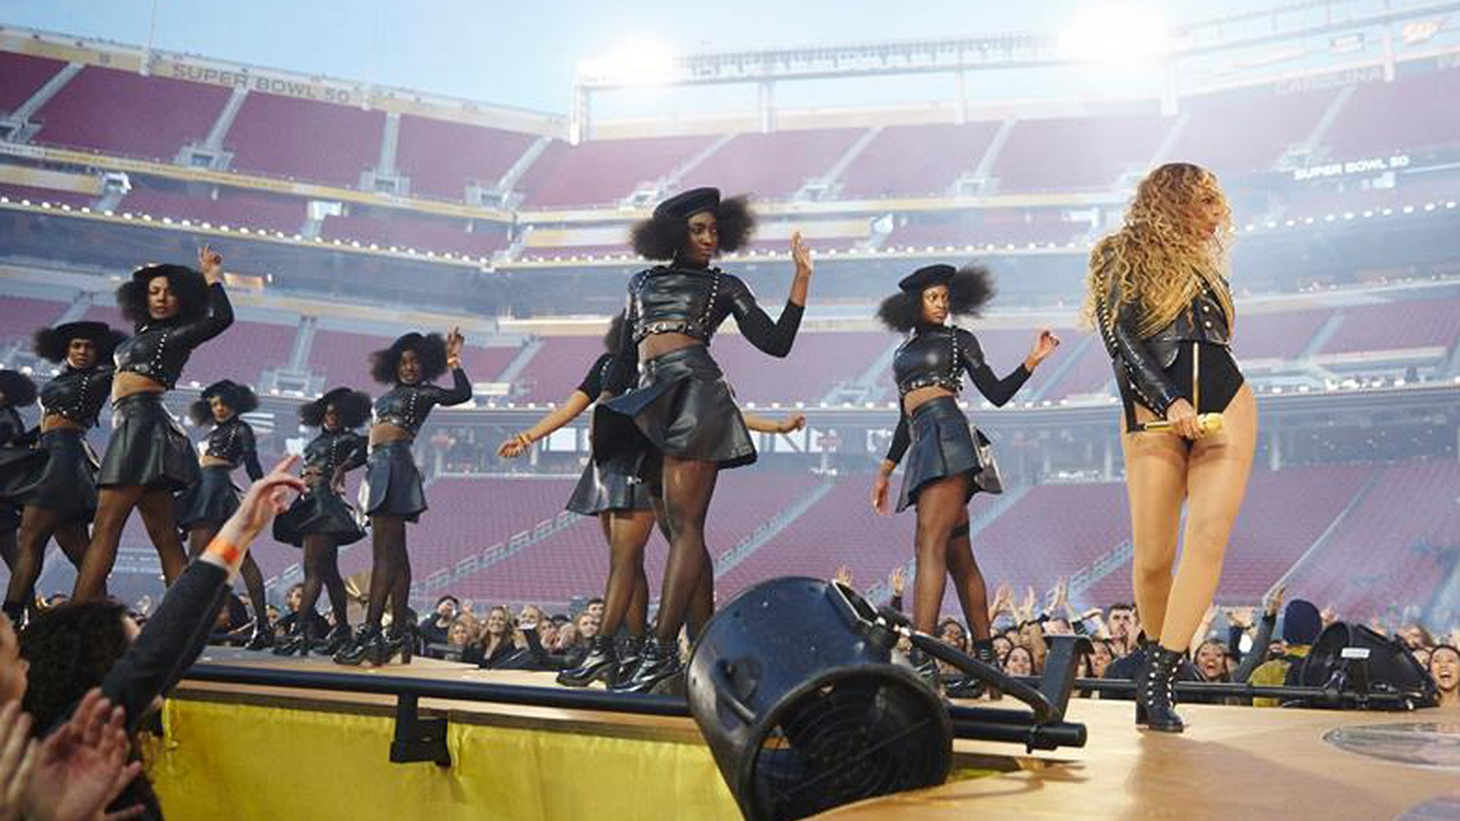 Sunday's Super Bowl game was a defensive contest that failed to leave much of an impression. Beyoncé's Super Bowl performance is another matter.         Danielle Belton is Associate Editor of  The Root , an online magazine that covers African-American culture.